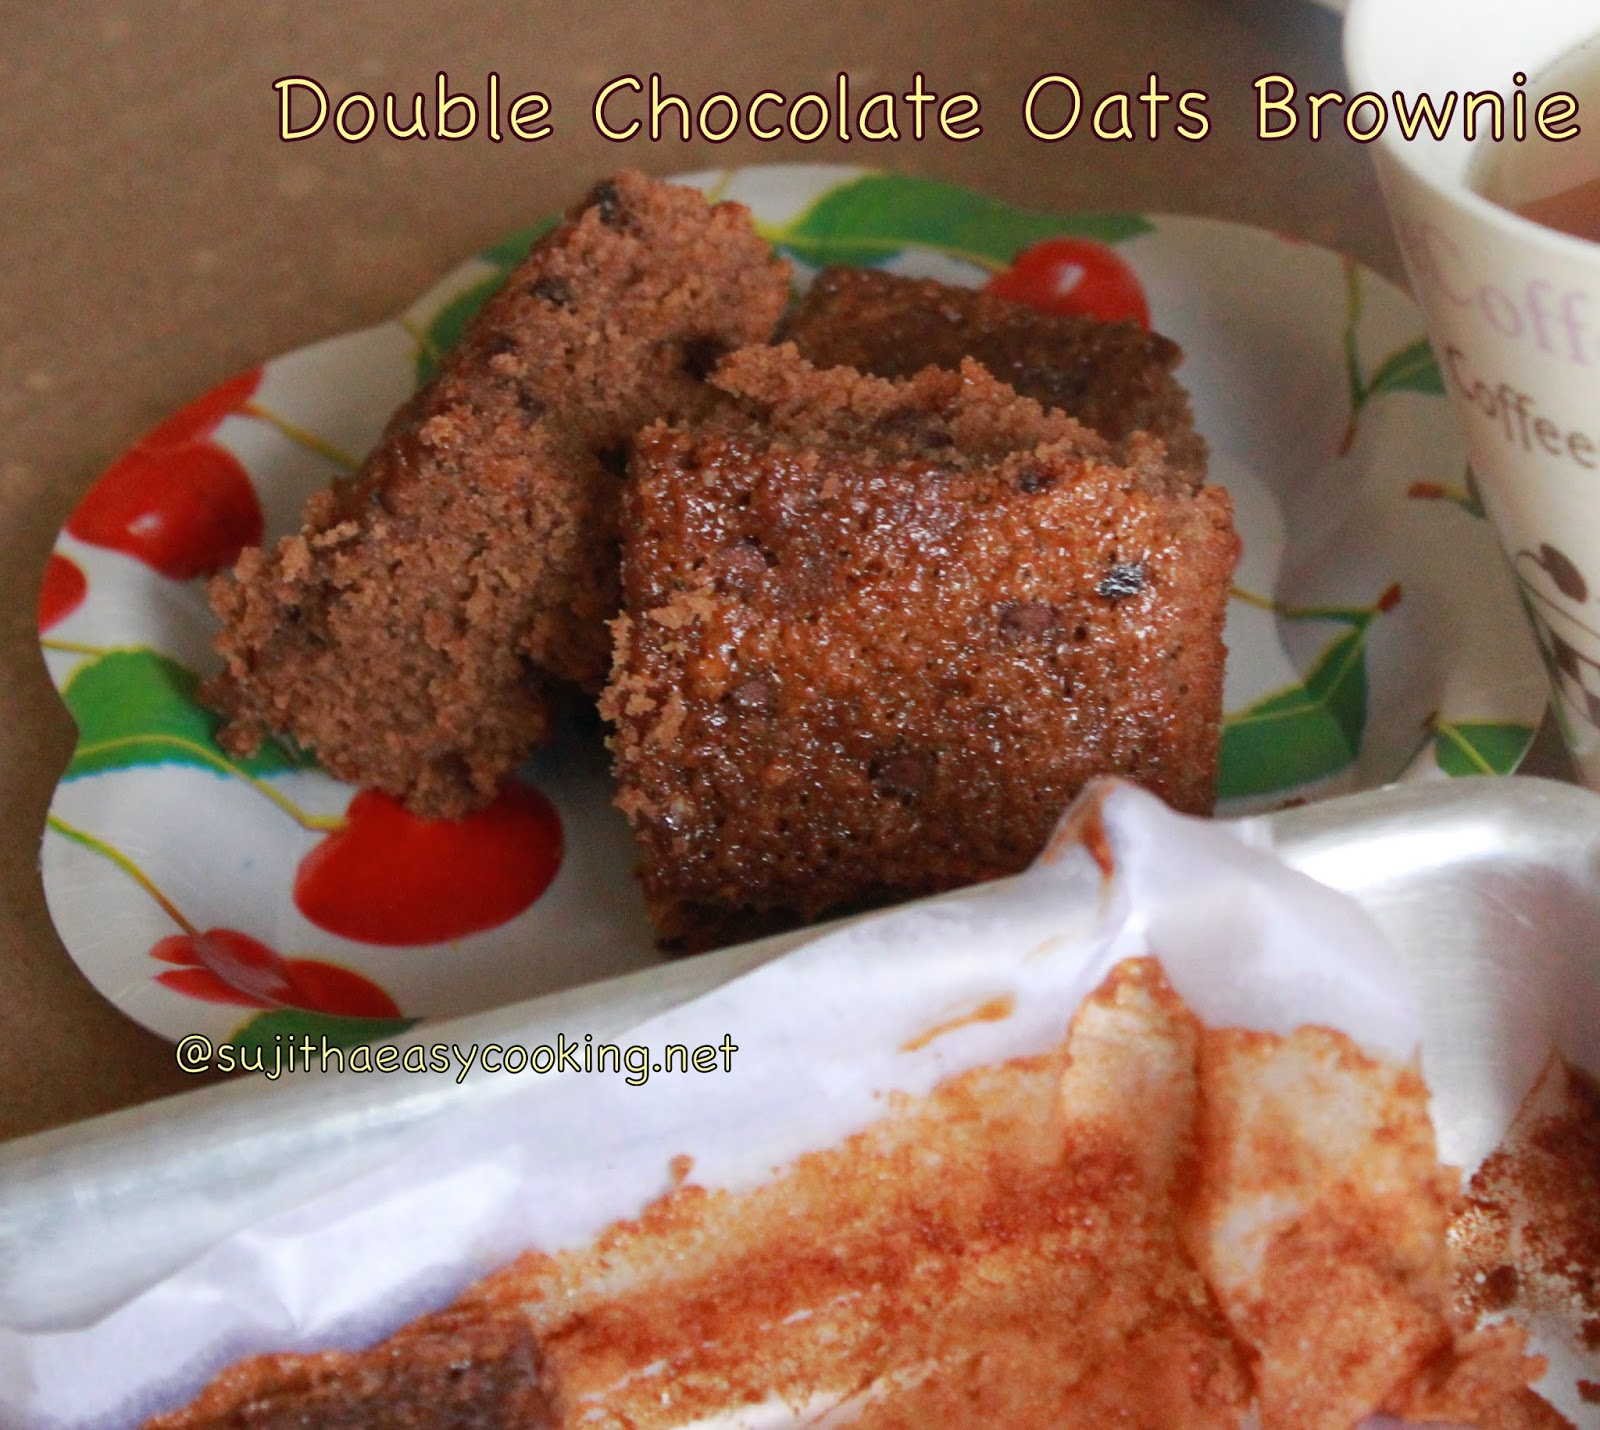 Double Chocolate Oats Brownie